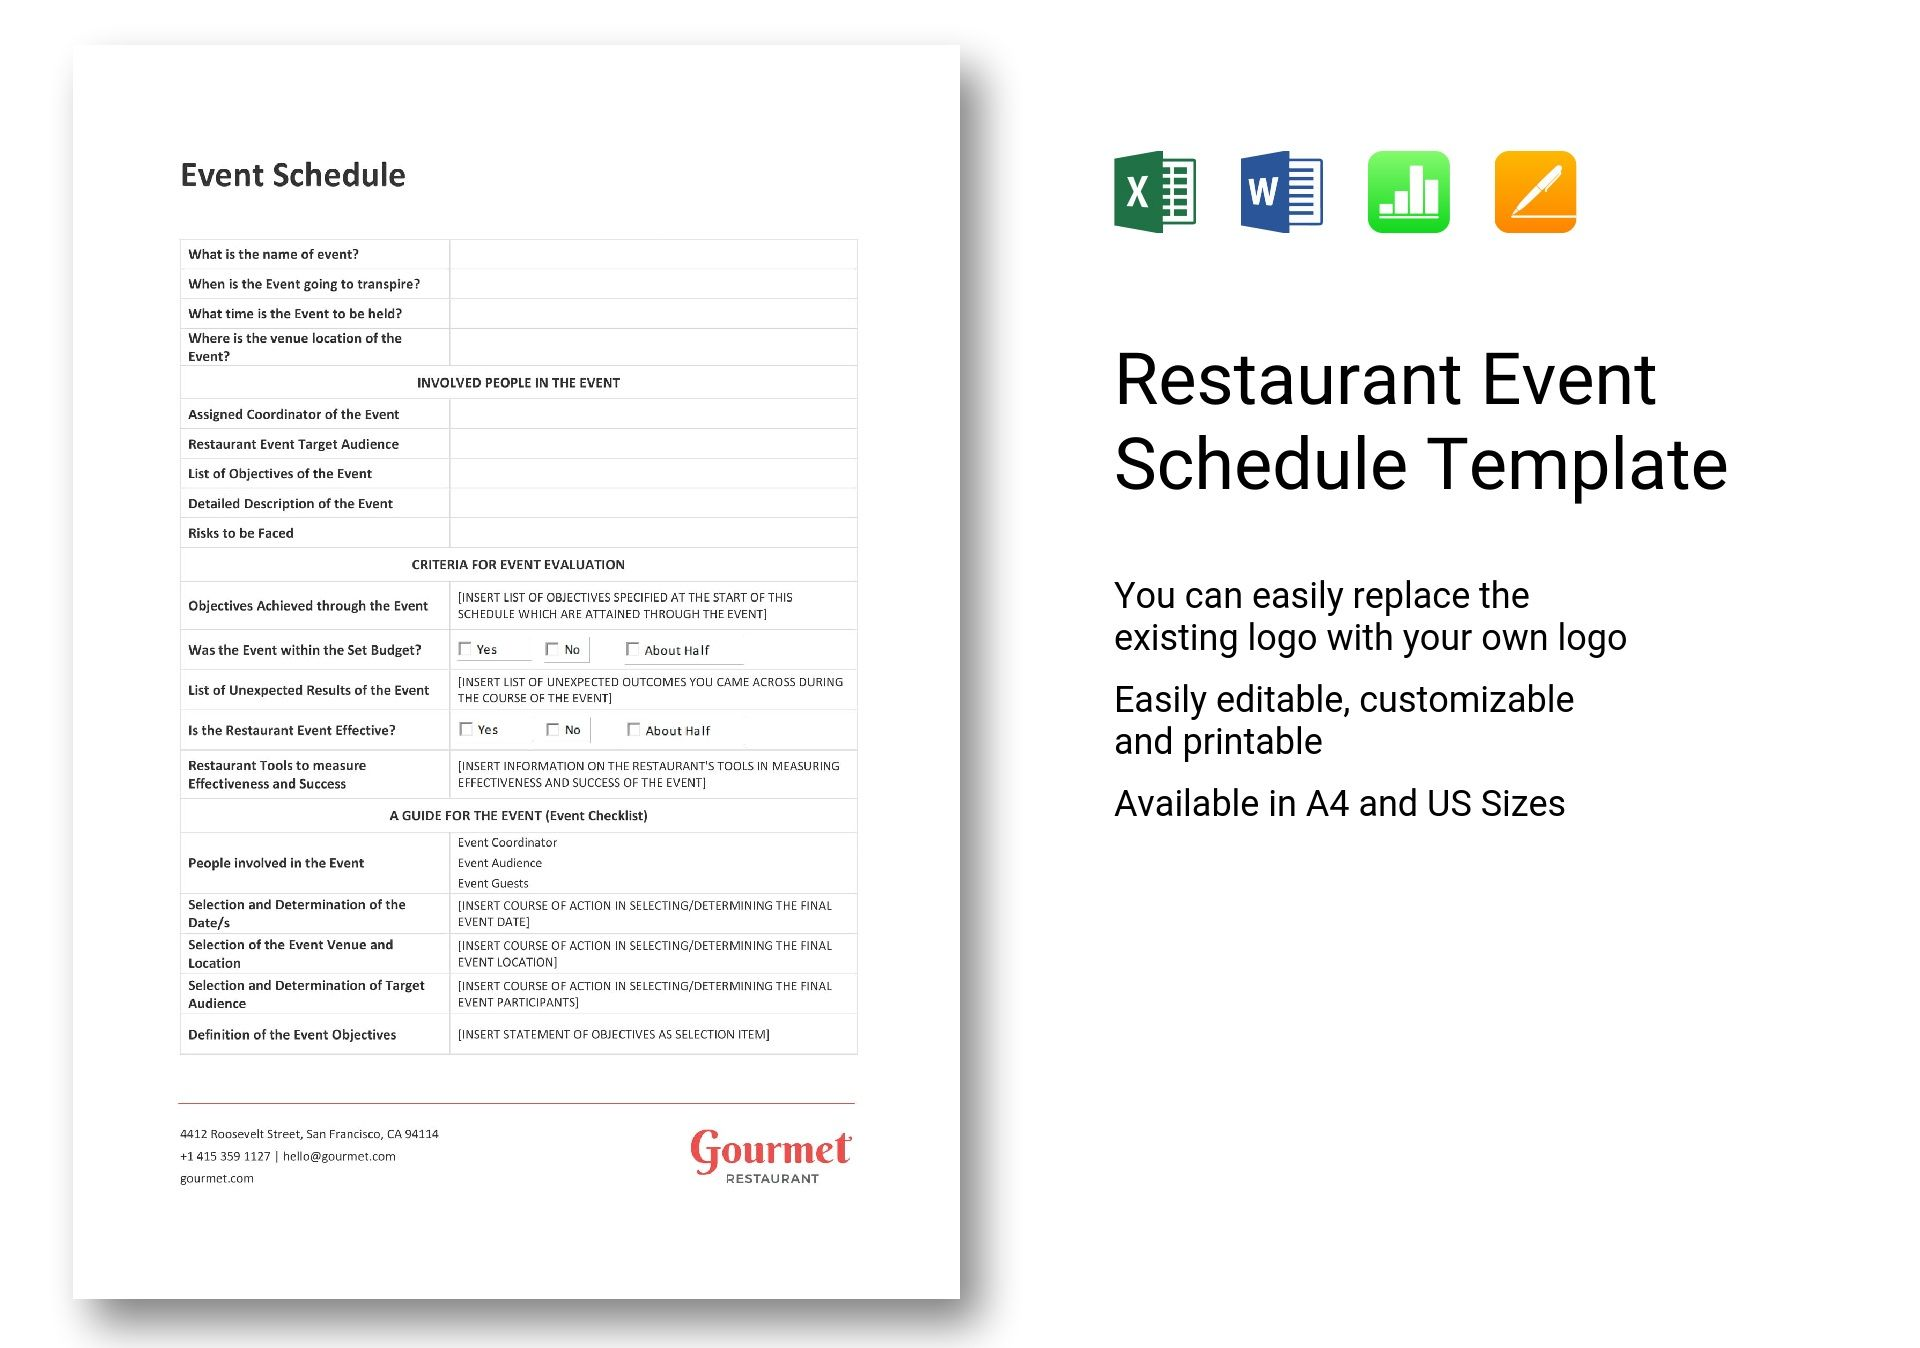 More customers means more cooks. Restaurant Event Schedule Template In Word Excel Apple Pages Numbers